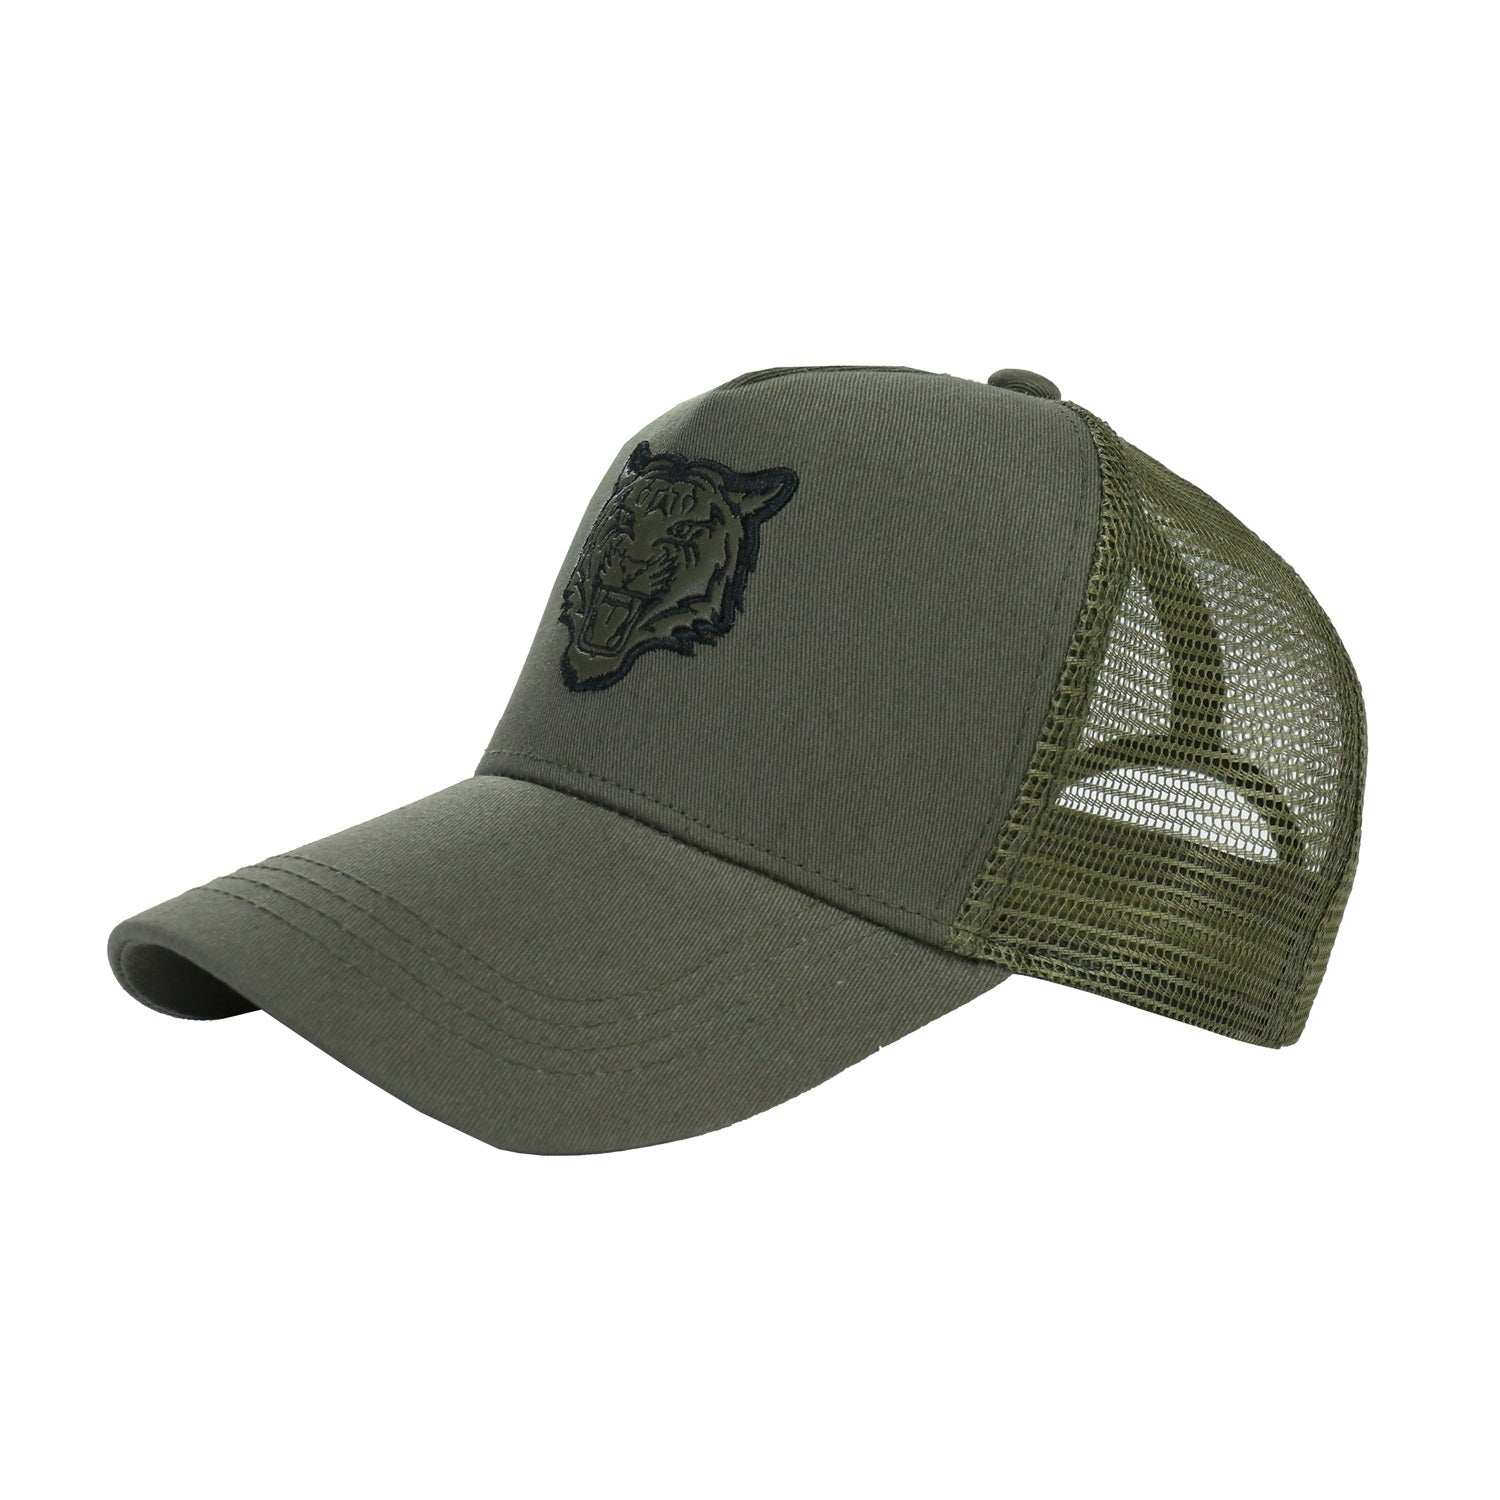 Men's Printed Trucker Adjustable Snapback Hat Cap(YF7A01-F SAGE)